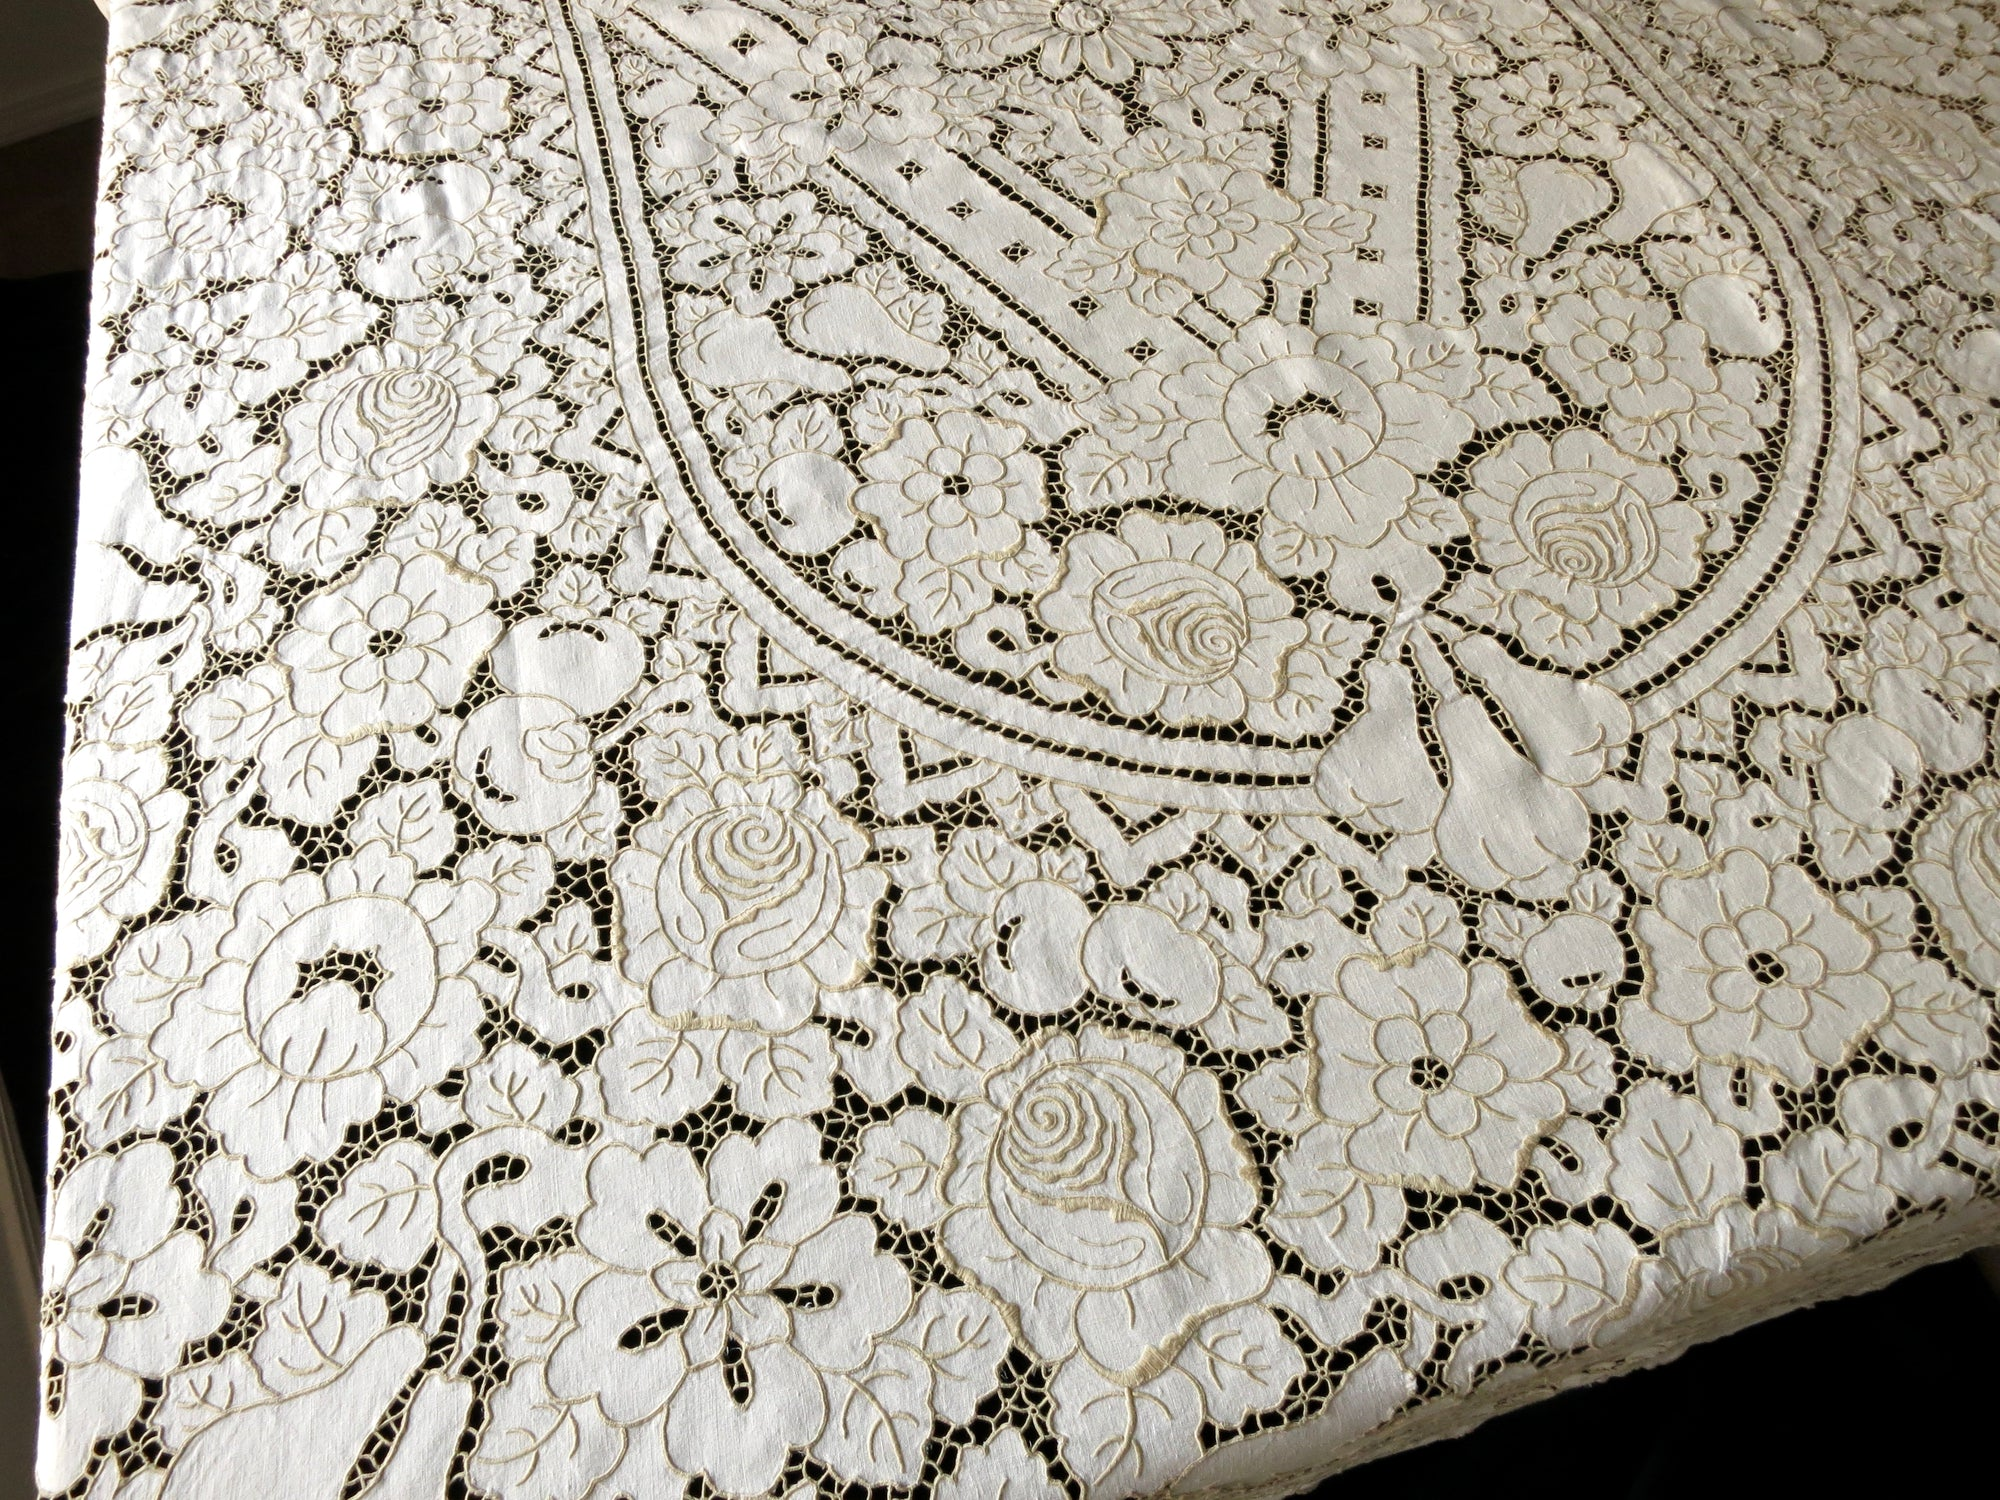 Fruit & Cabbage Roses Vintage Hand Embroidery Linen Tablecloth 66x102""